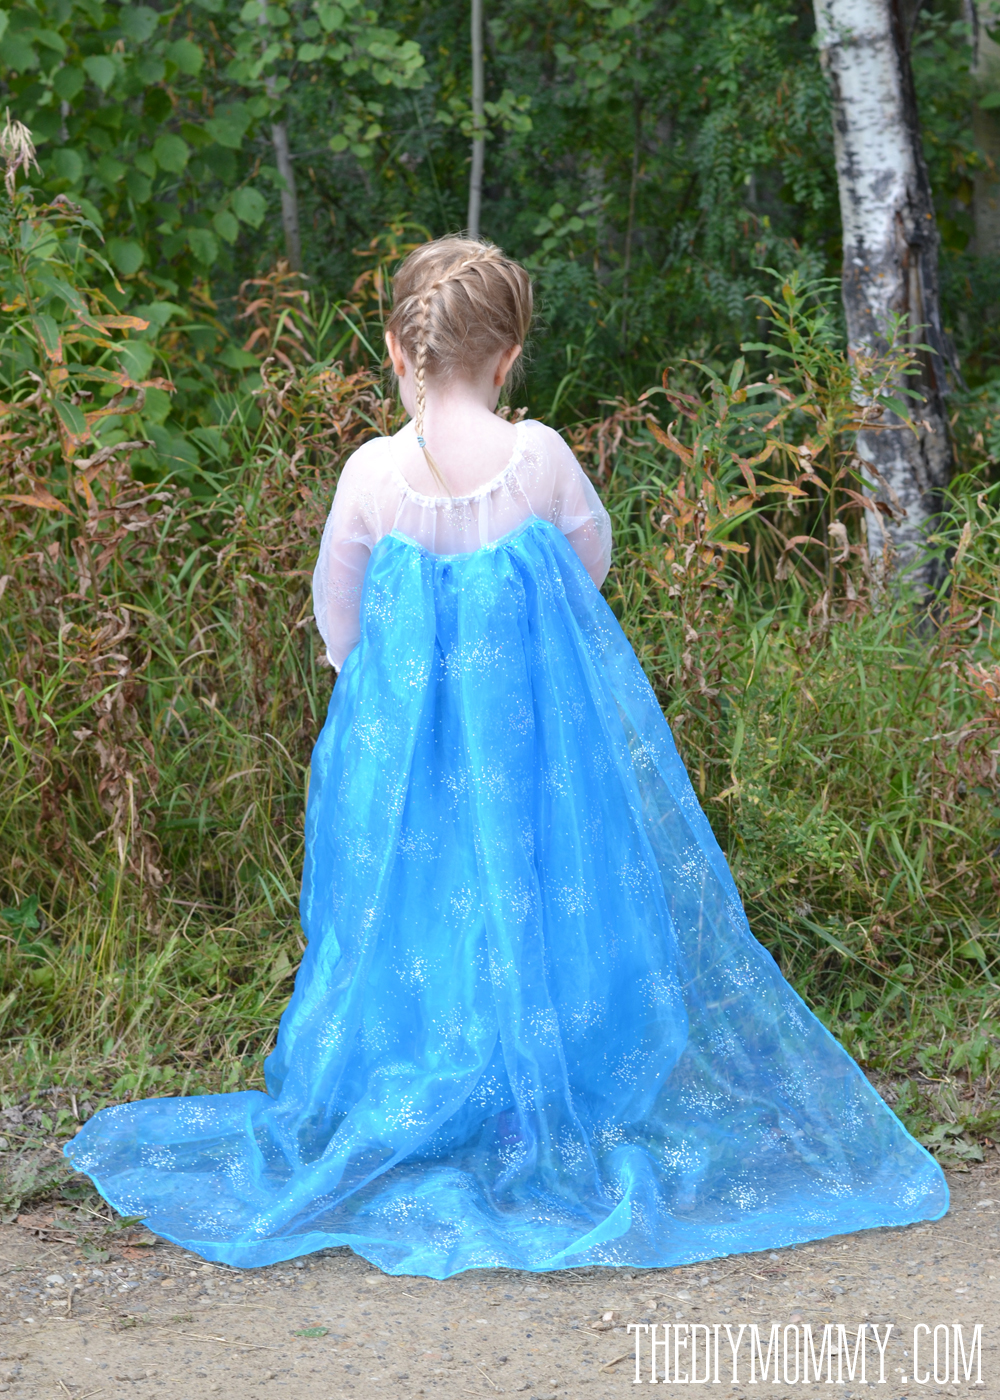 DIY Elsa Inspired Snow Princess Dress - Free Pattern u0026 Tutorial & Free Pattern and Tutorial for a Frozen Inspired Elsa Dress Costume ...